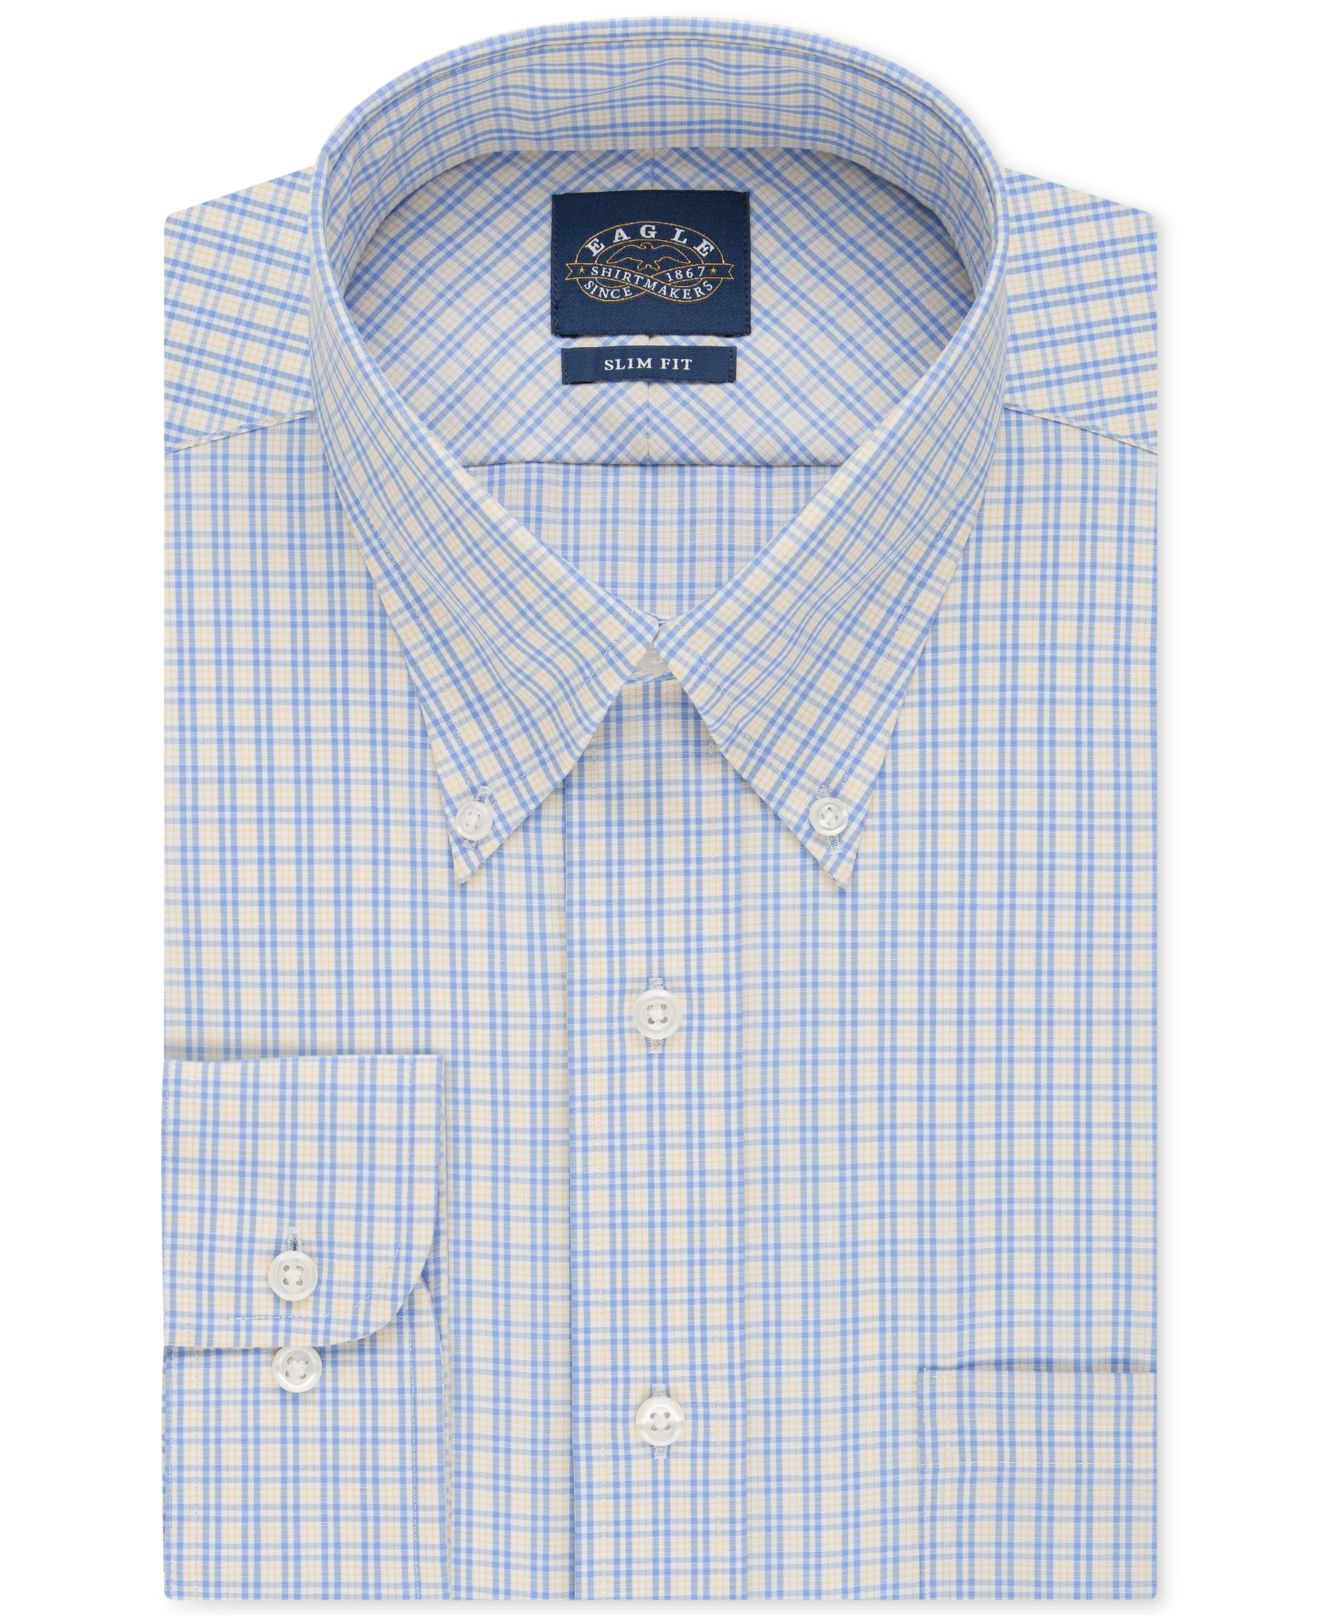 Eagle slim fit non iron blue and yellow check dress shirt for Slim fit non iron shirts